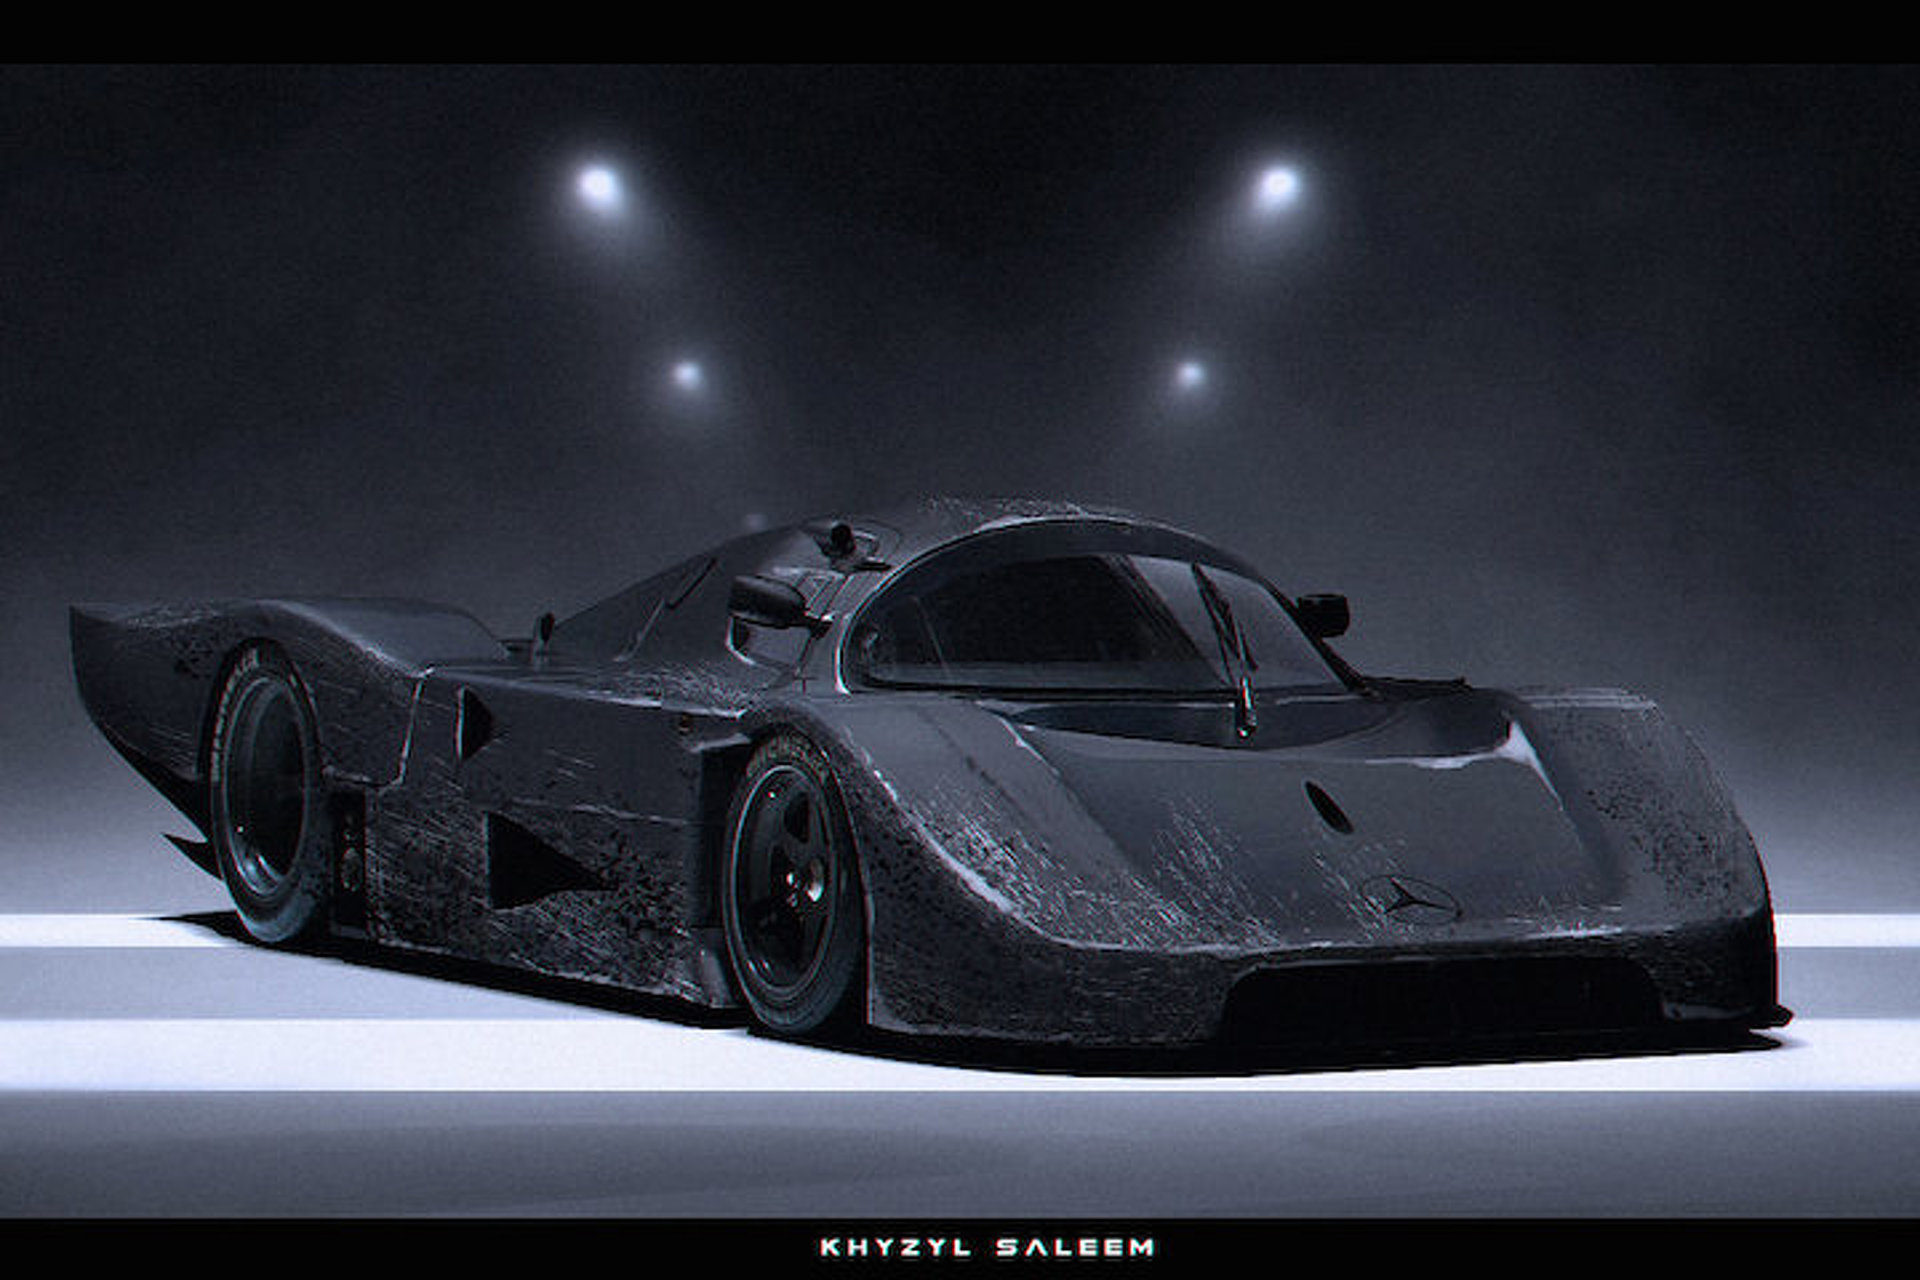 Artist Creates Amazing Sci-Fi Supercar Concepts [Photo Gallery]